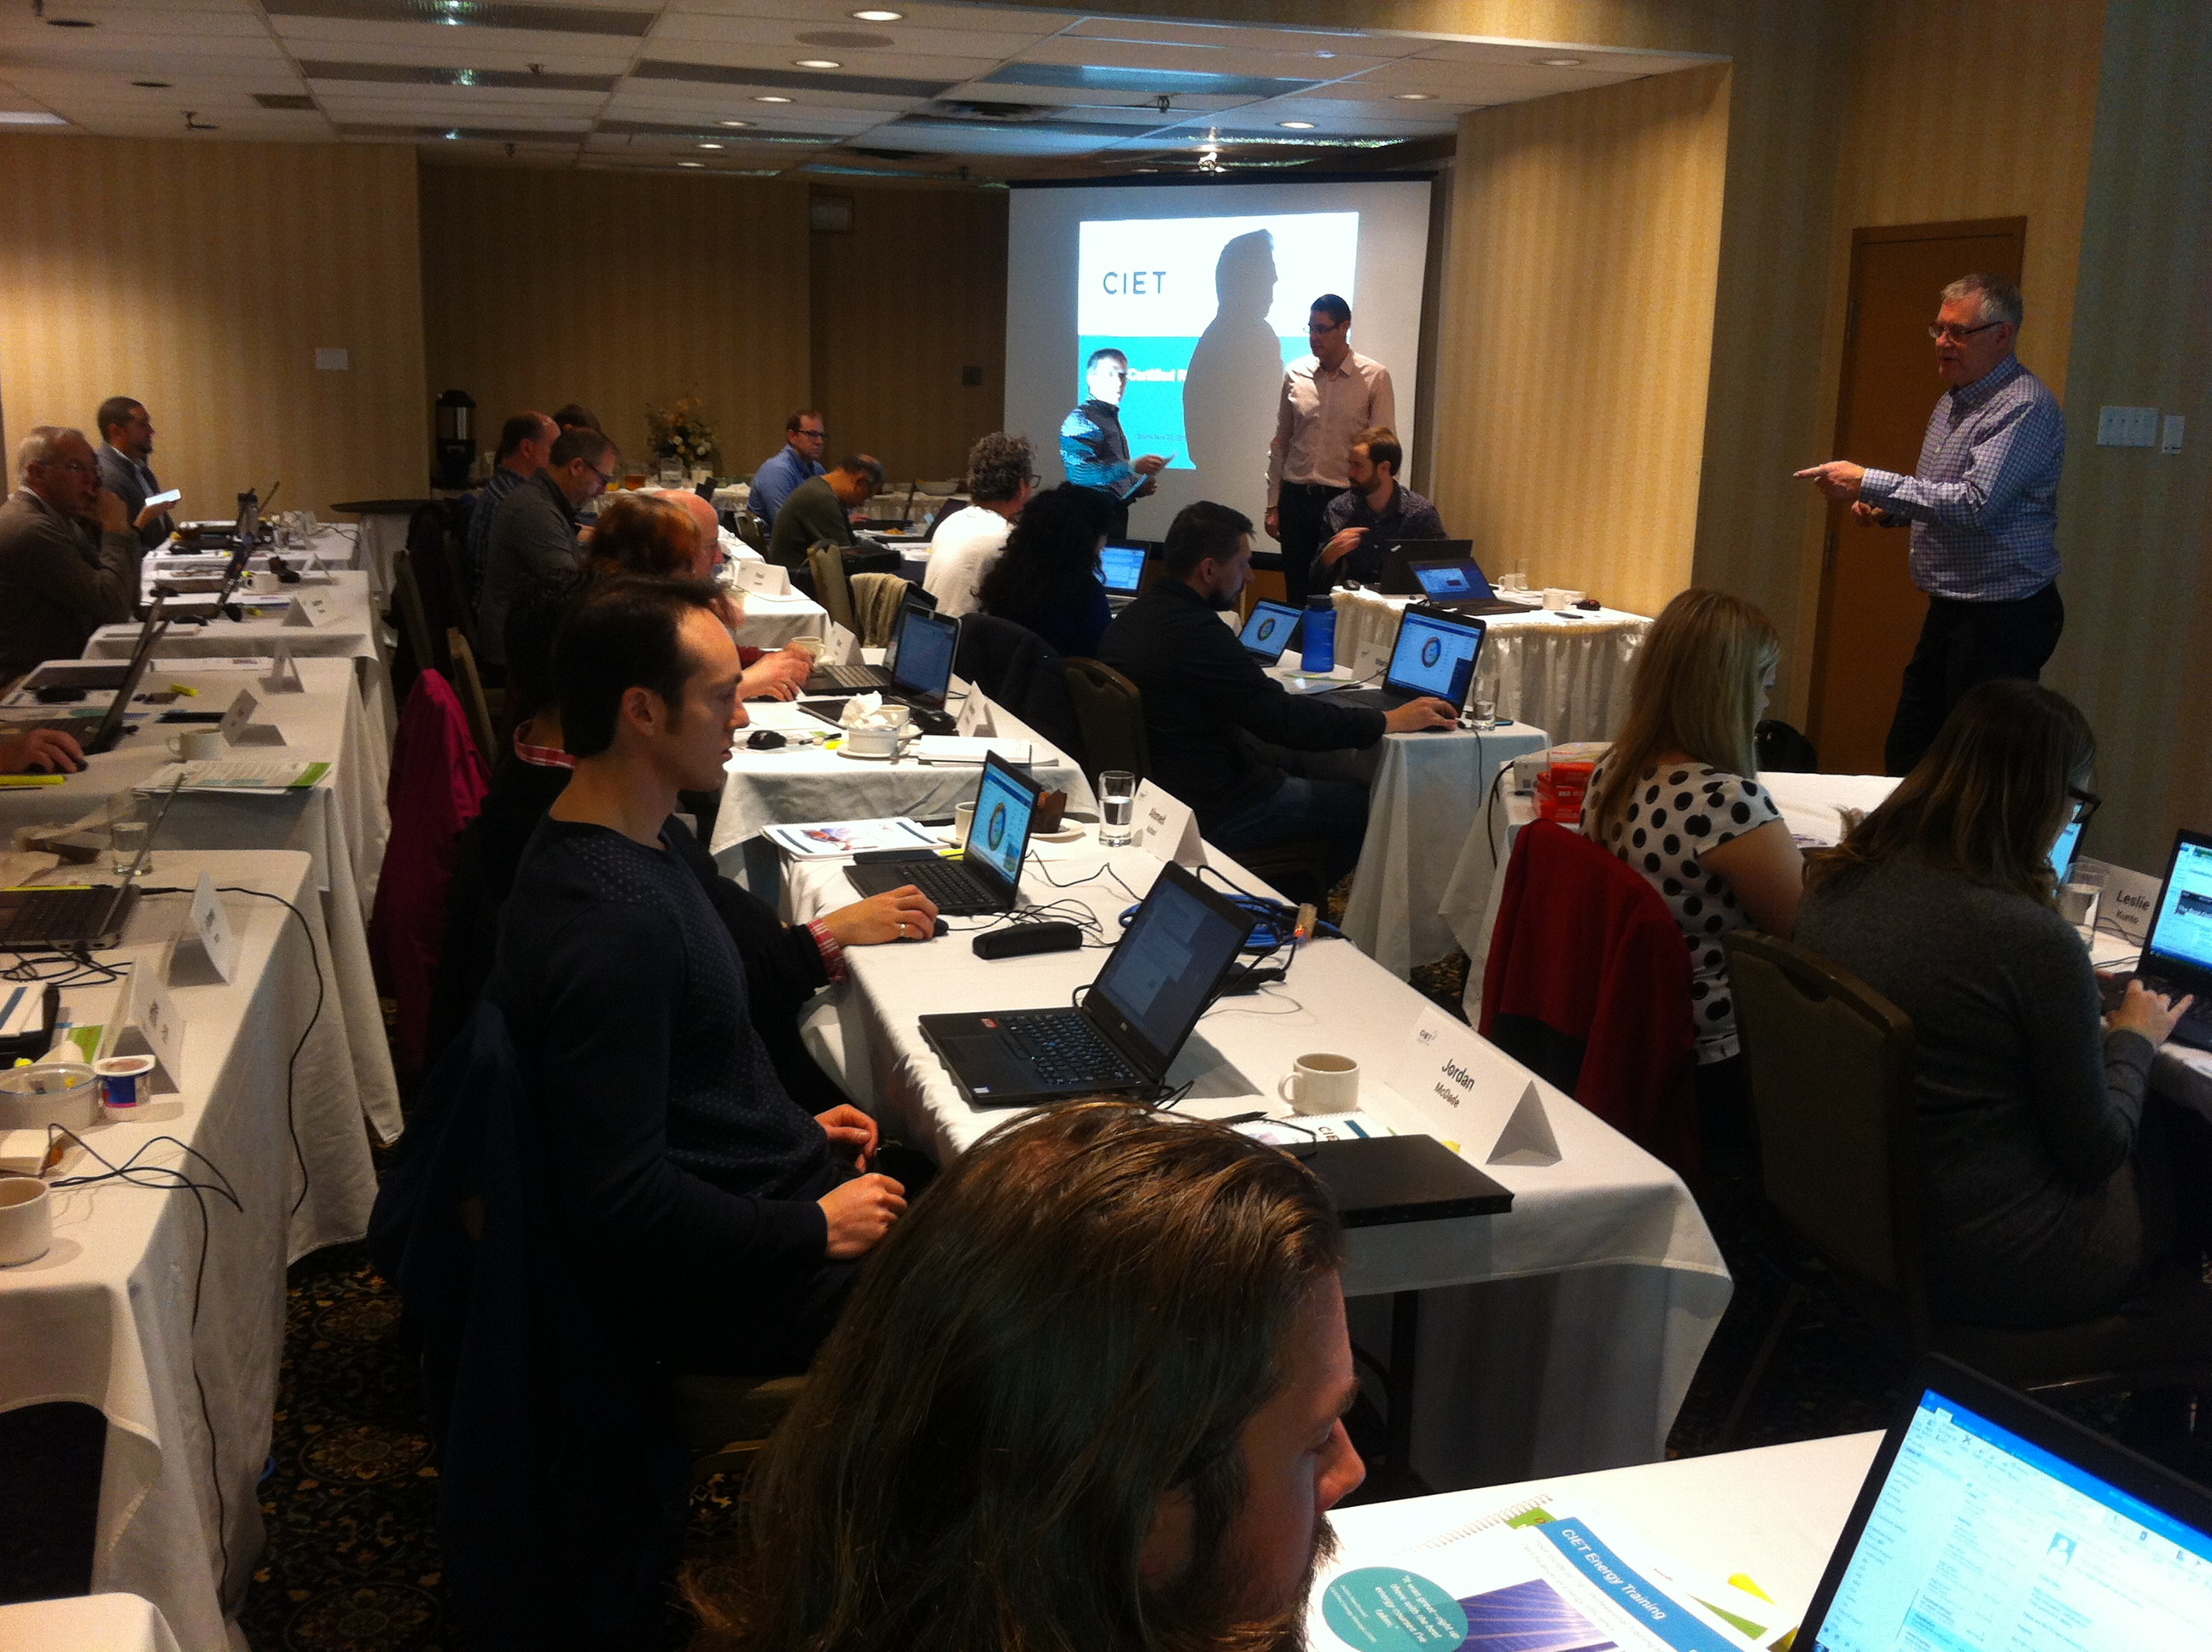 CIET's latest 3-day public RETScreen Expert® Training course kicked off in Toronto